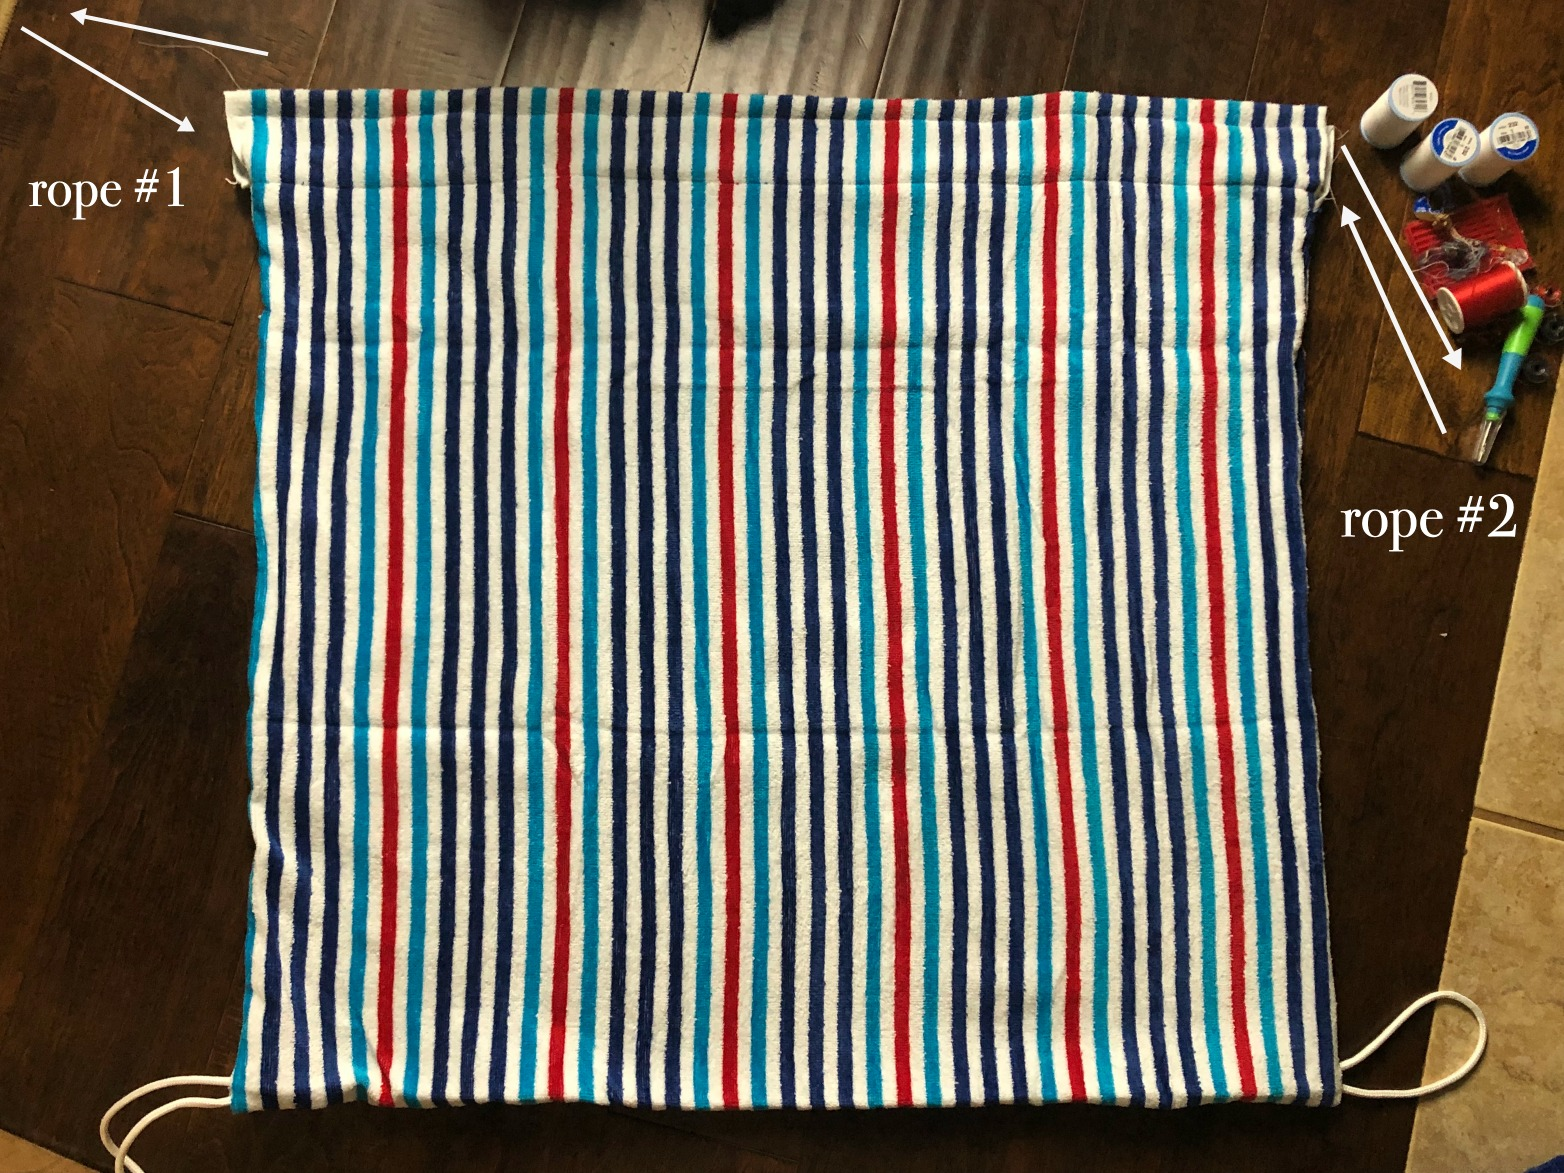 DIY Beach Towel Bag - feed the rope through the pockets